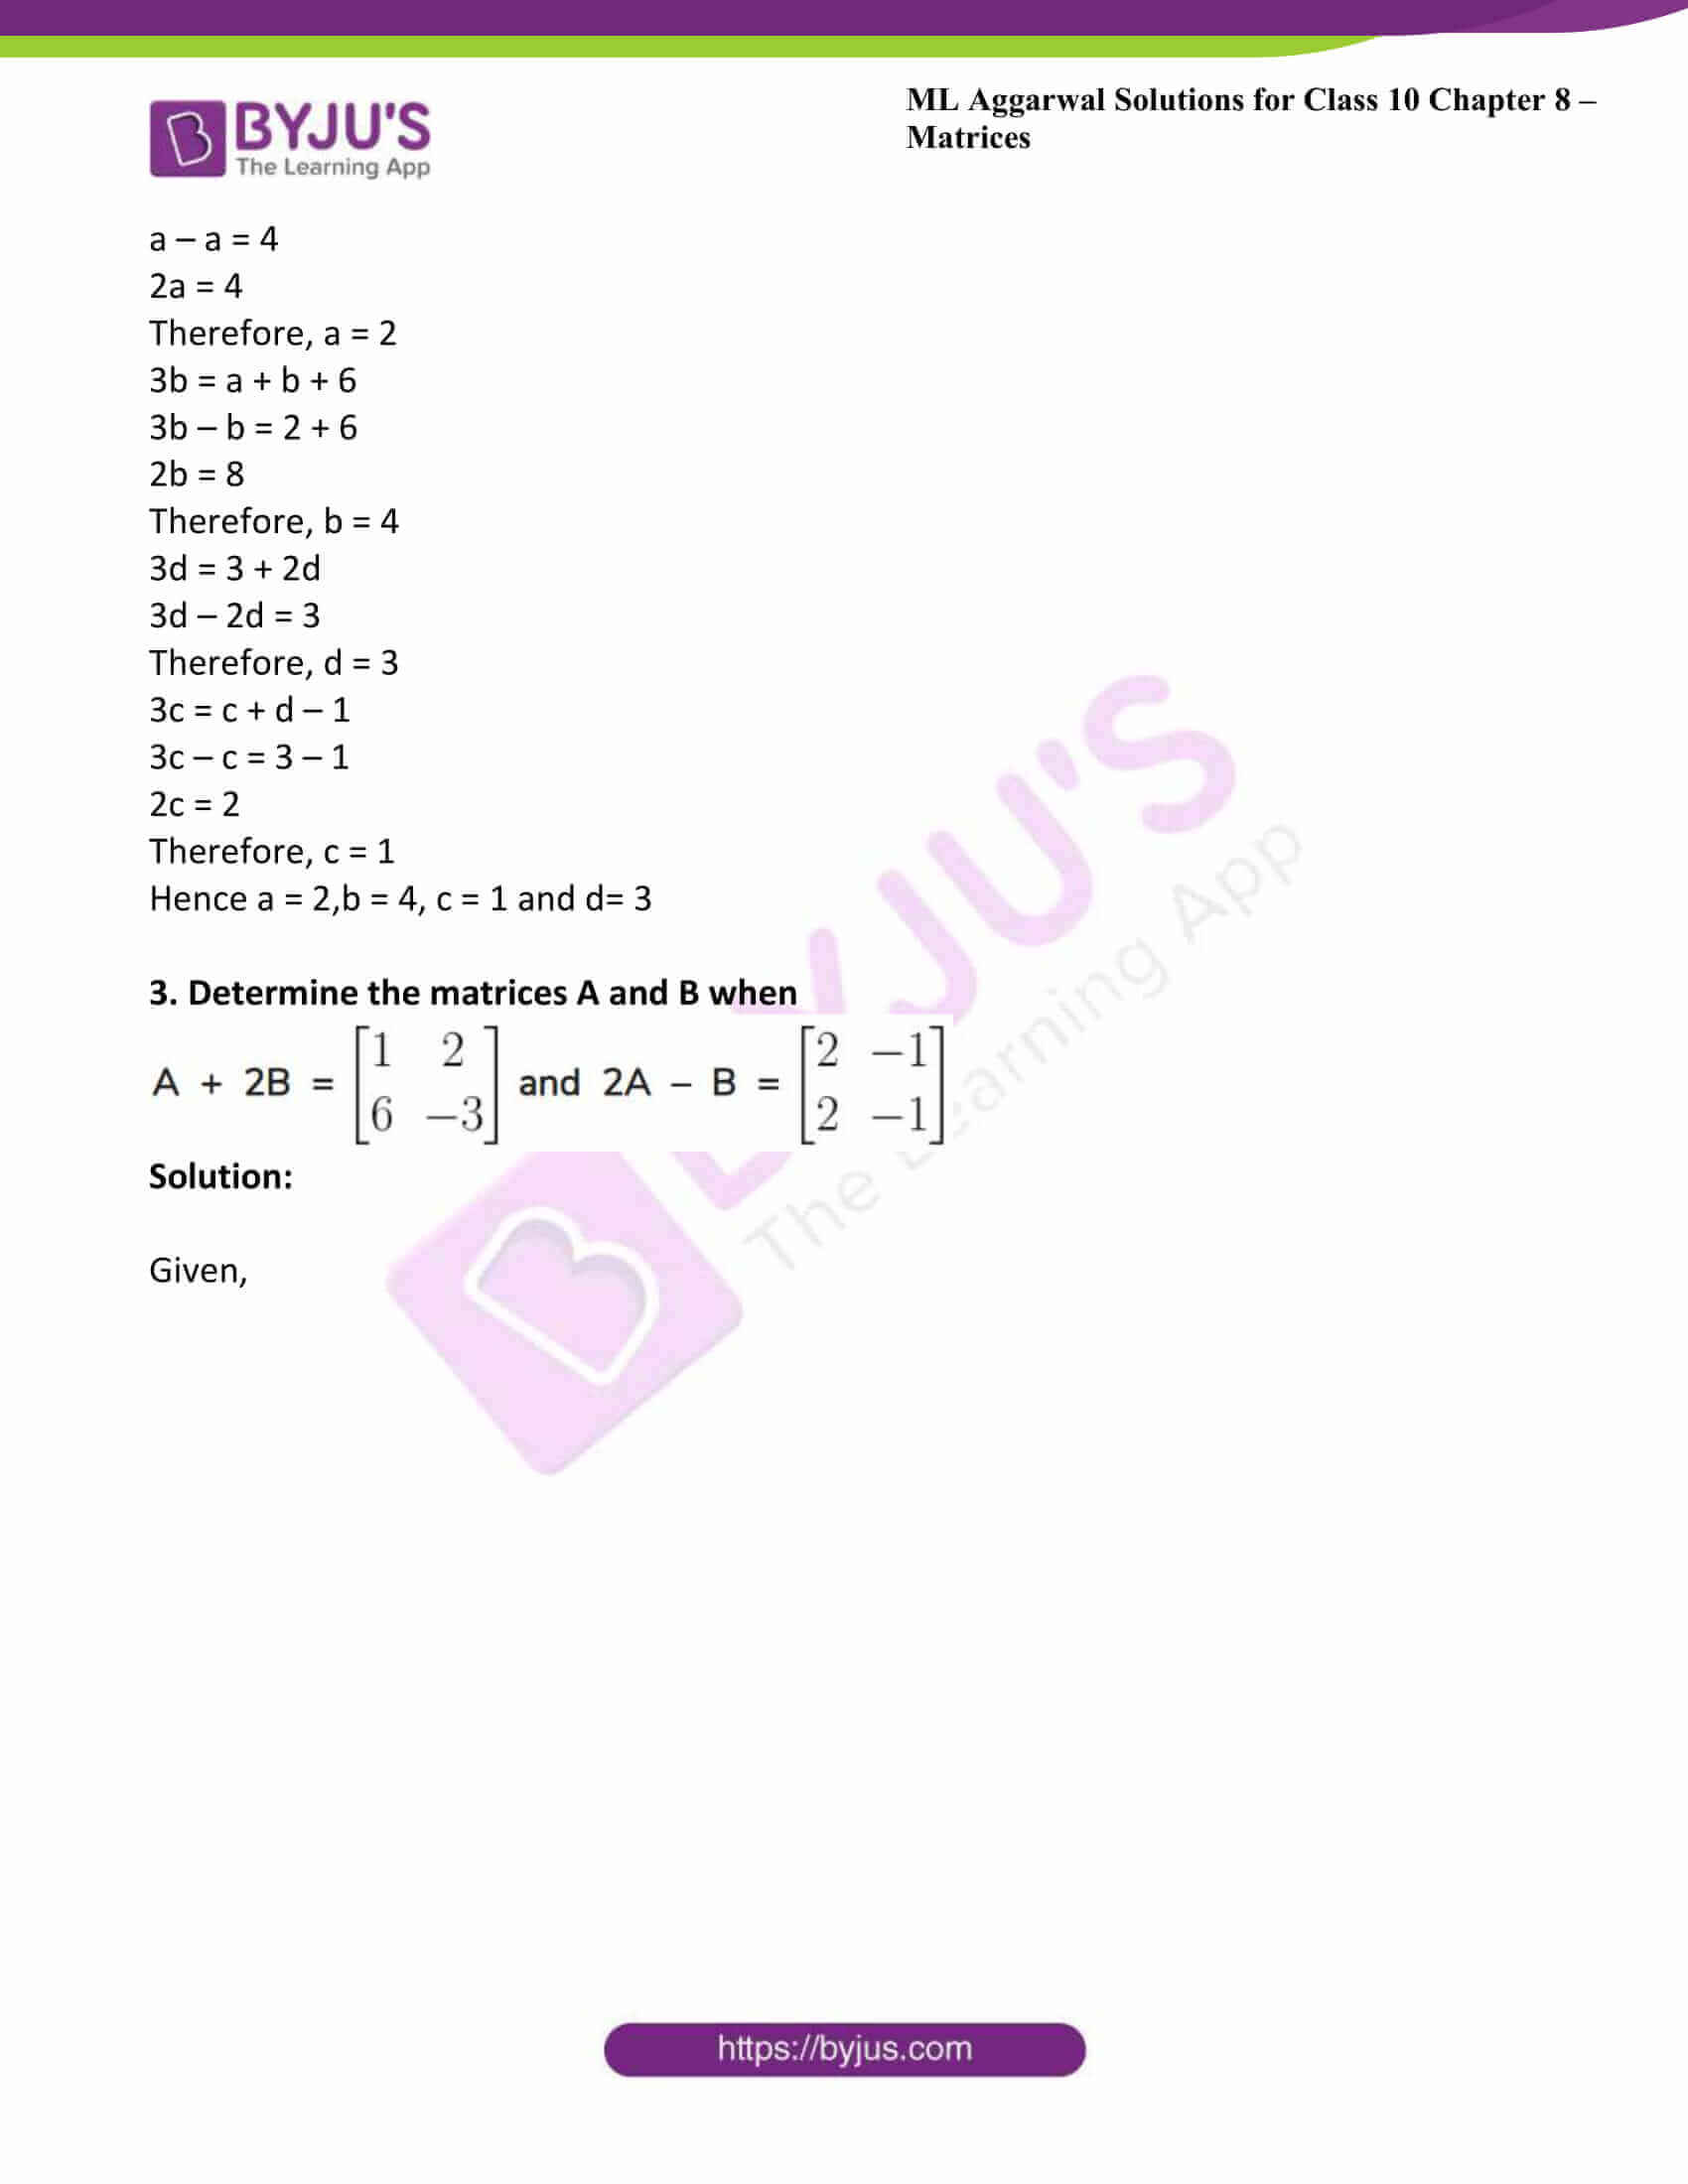 ml aggarwal solutions class 10 maths chapter 8 34